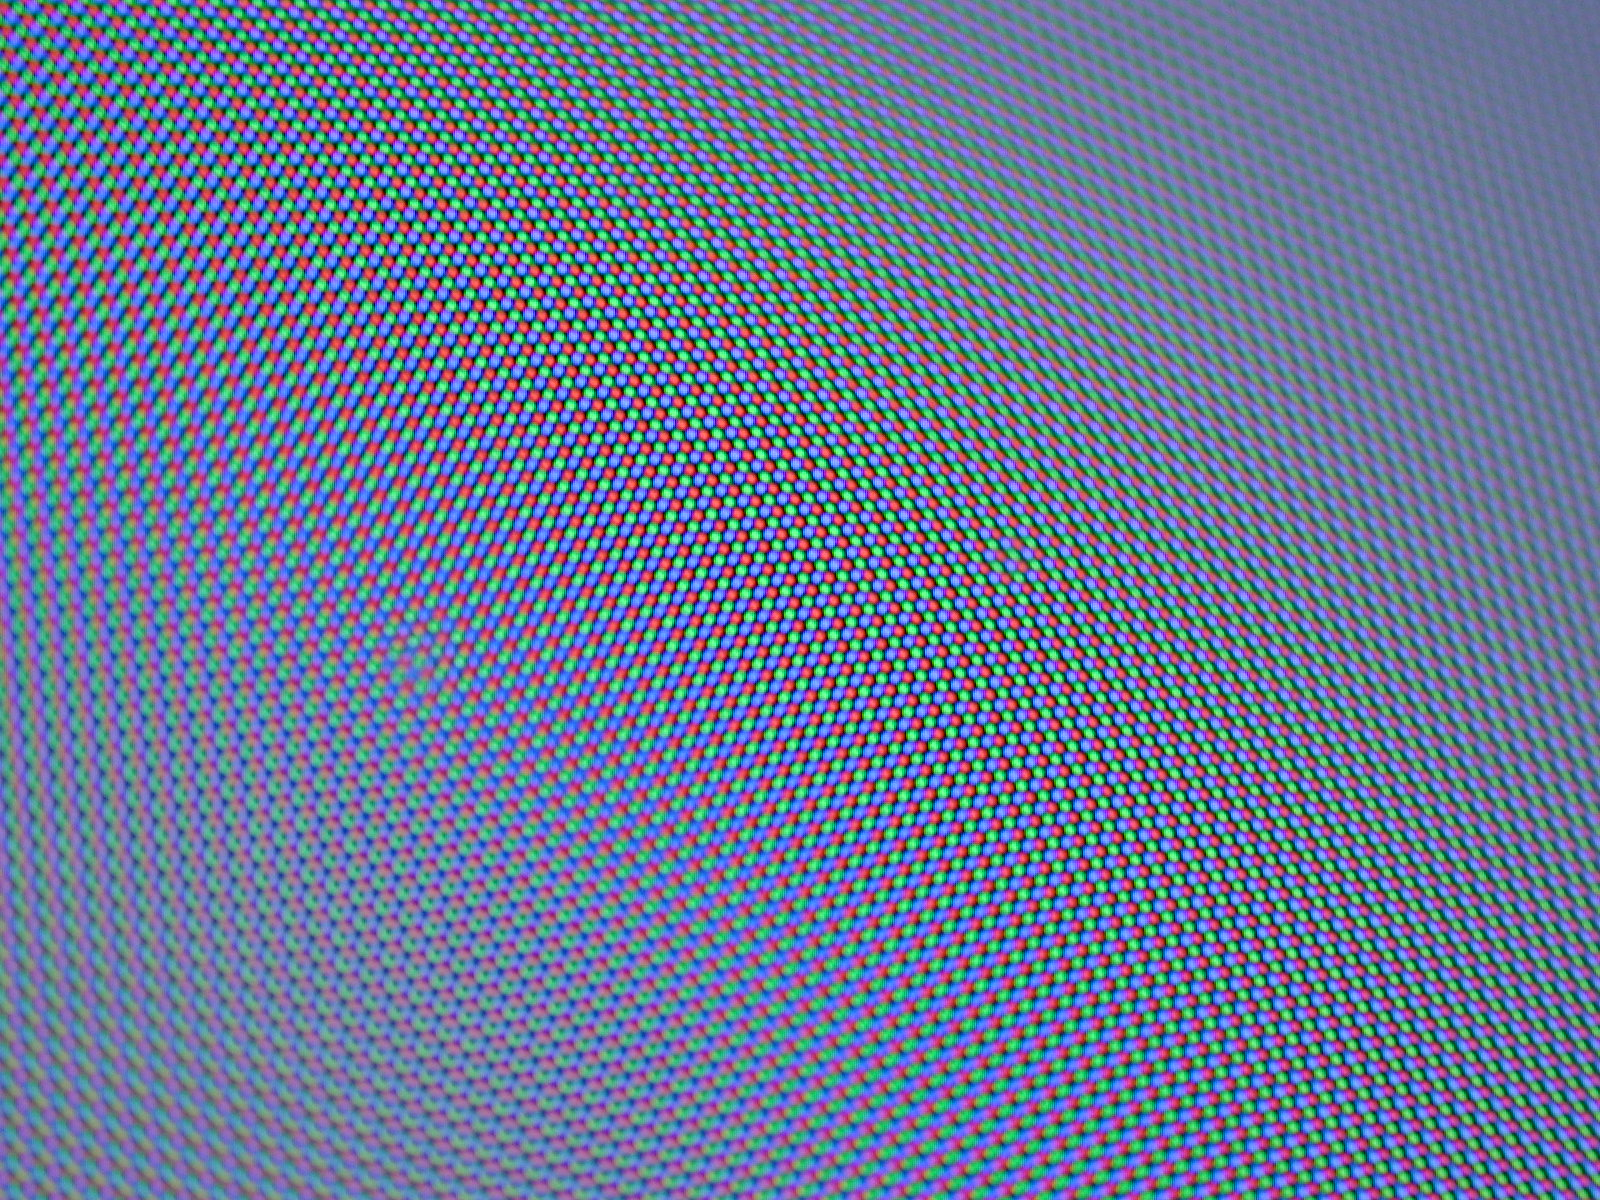 tv-screen-lines-texture.jpg (1600×1200) | Dizajn | Pinterest | Glitch